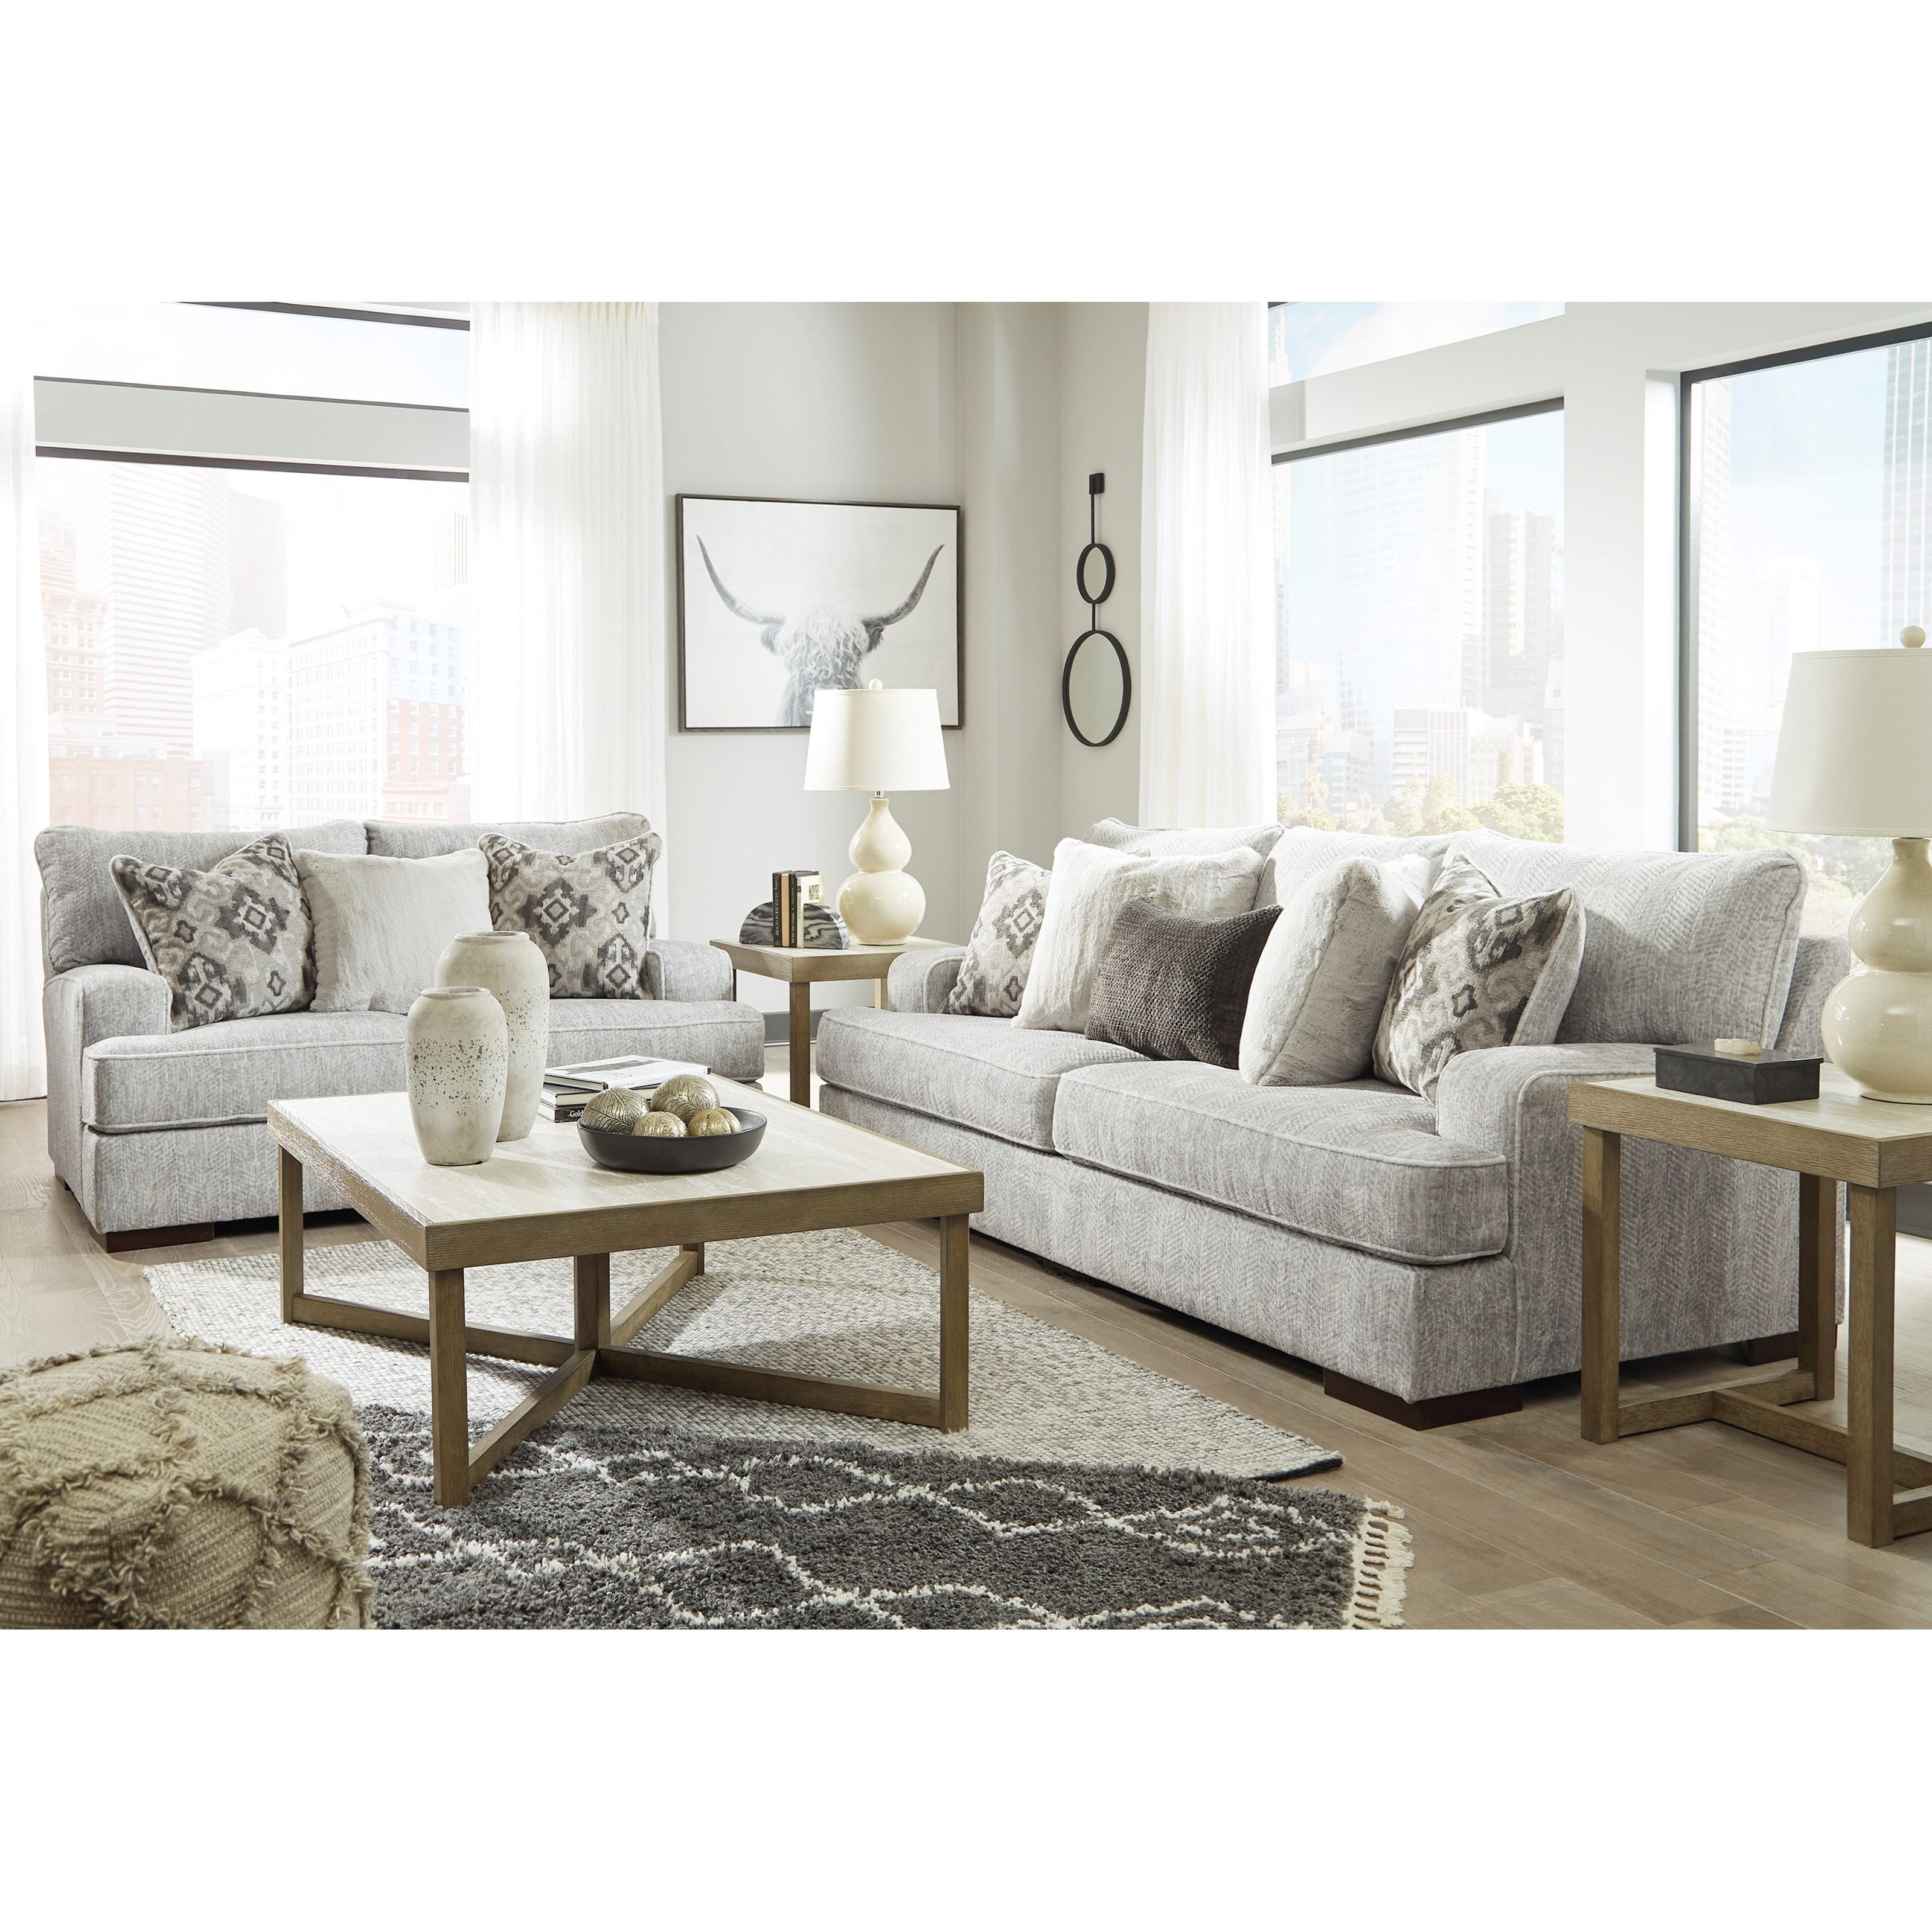 Mercado Stationary Living Room Group by Benchcraft at Lindy's Furniture Company